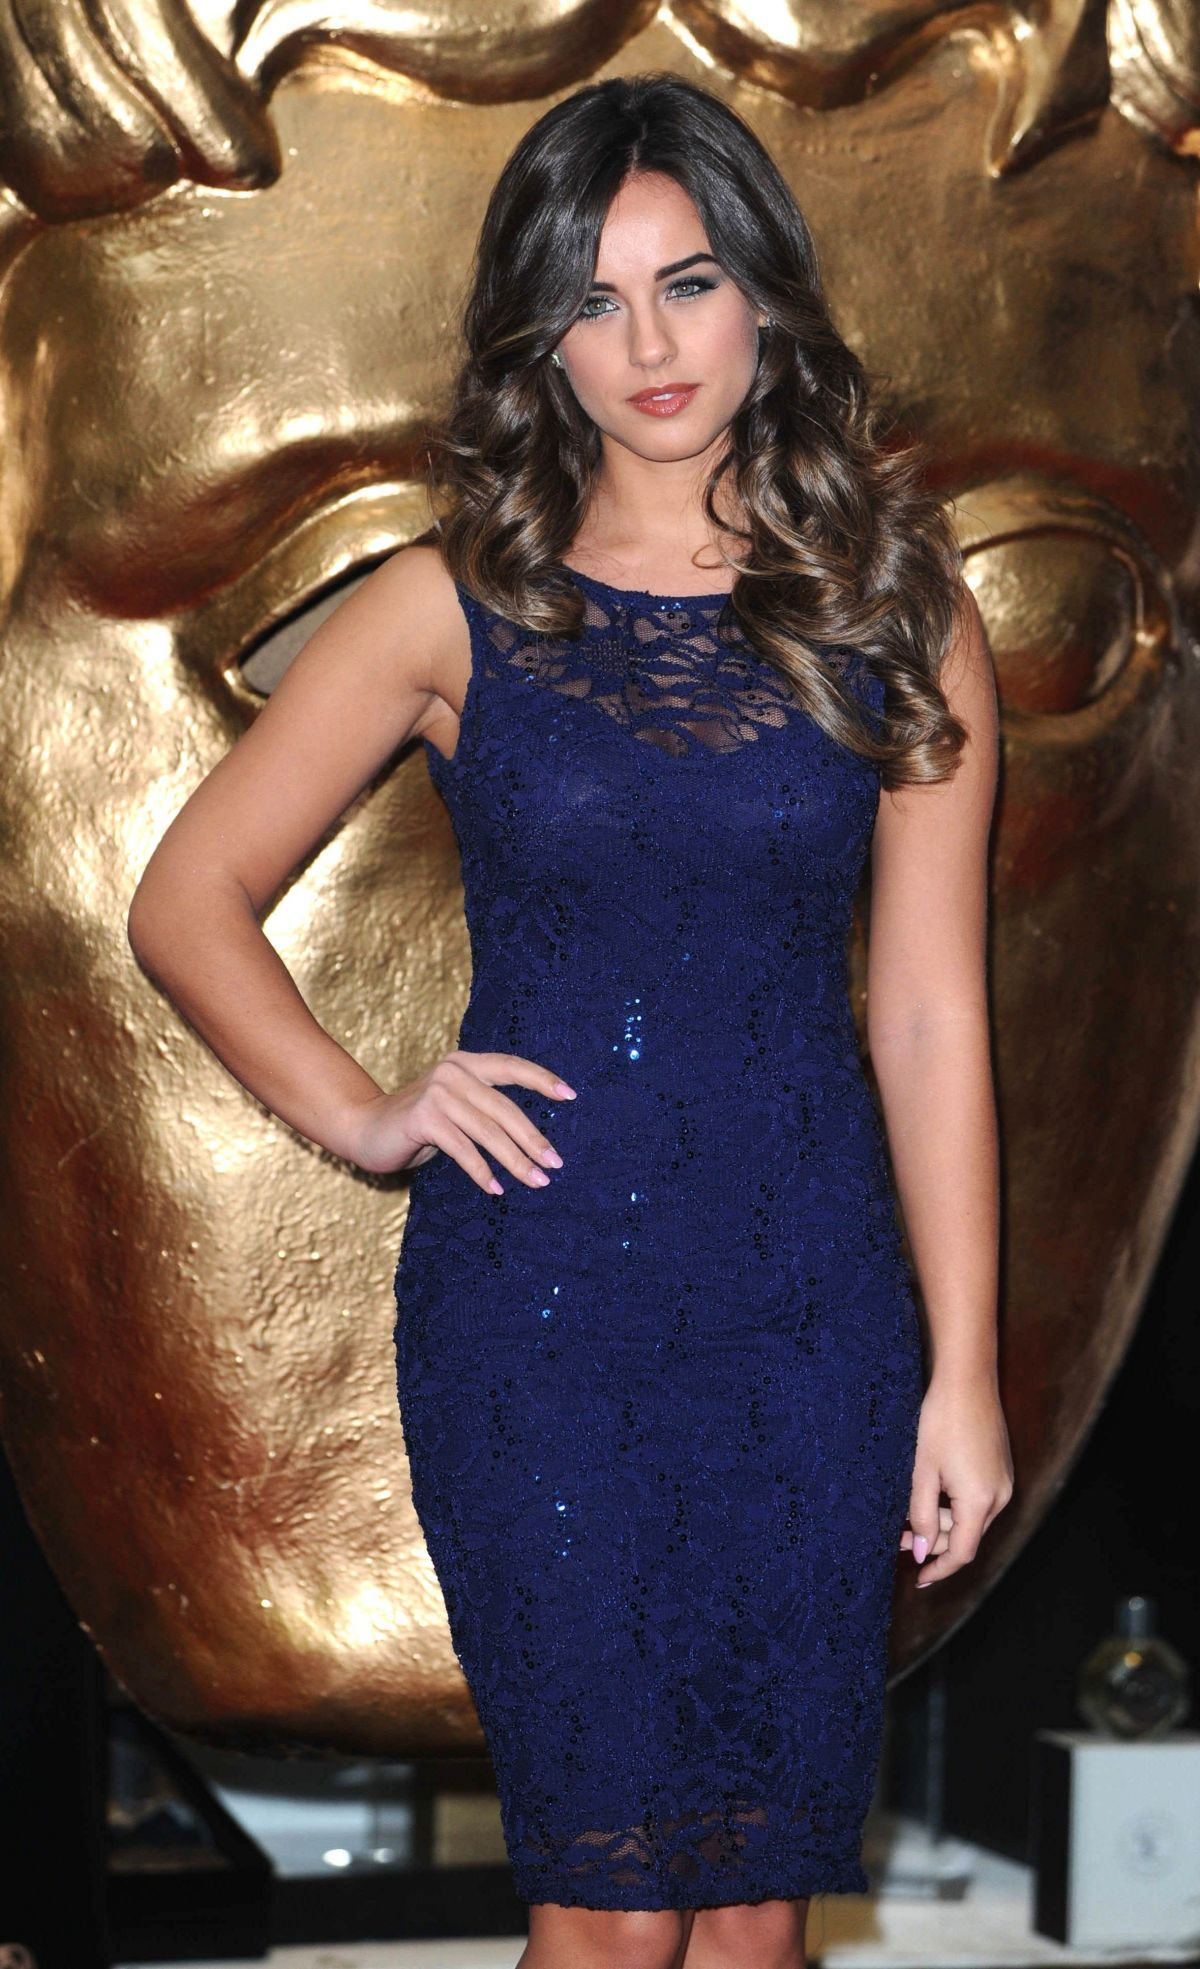 Georgia May Foote At The BAFTA Childrens Awards At Hilton Hotel